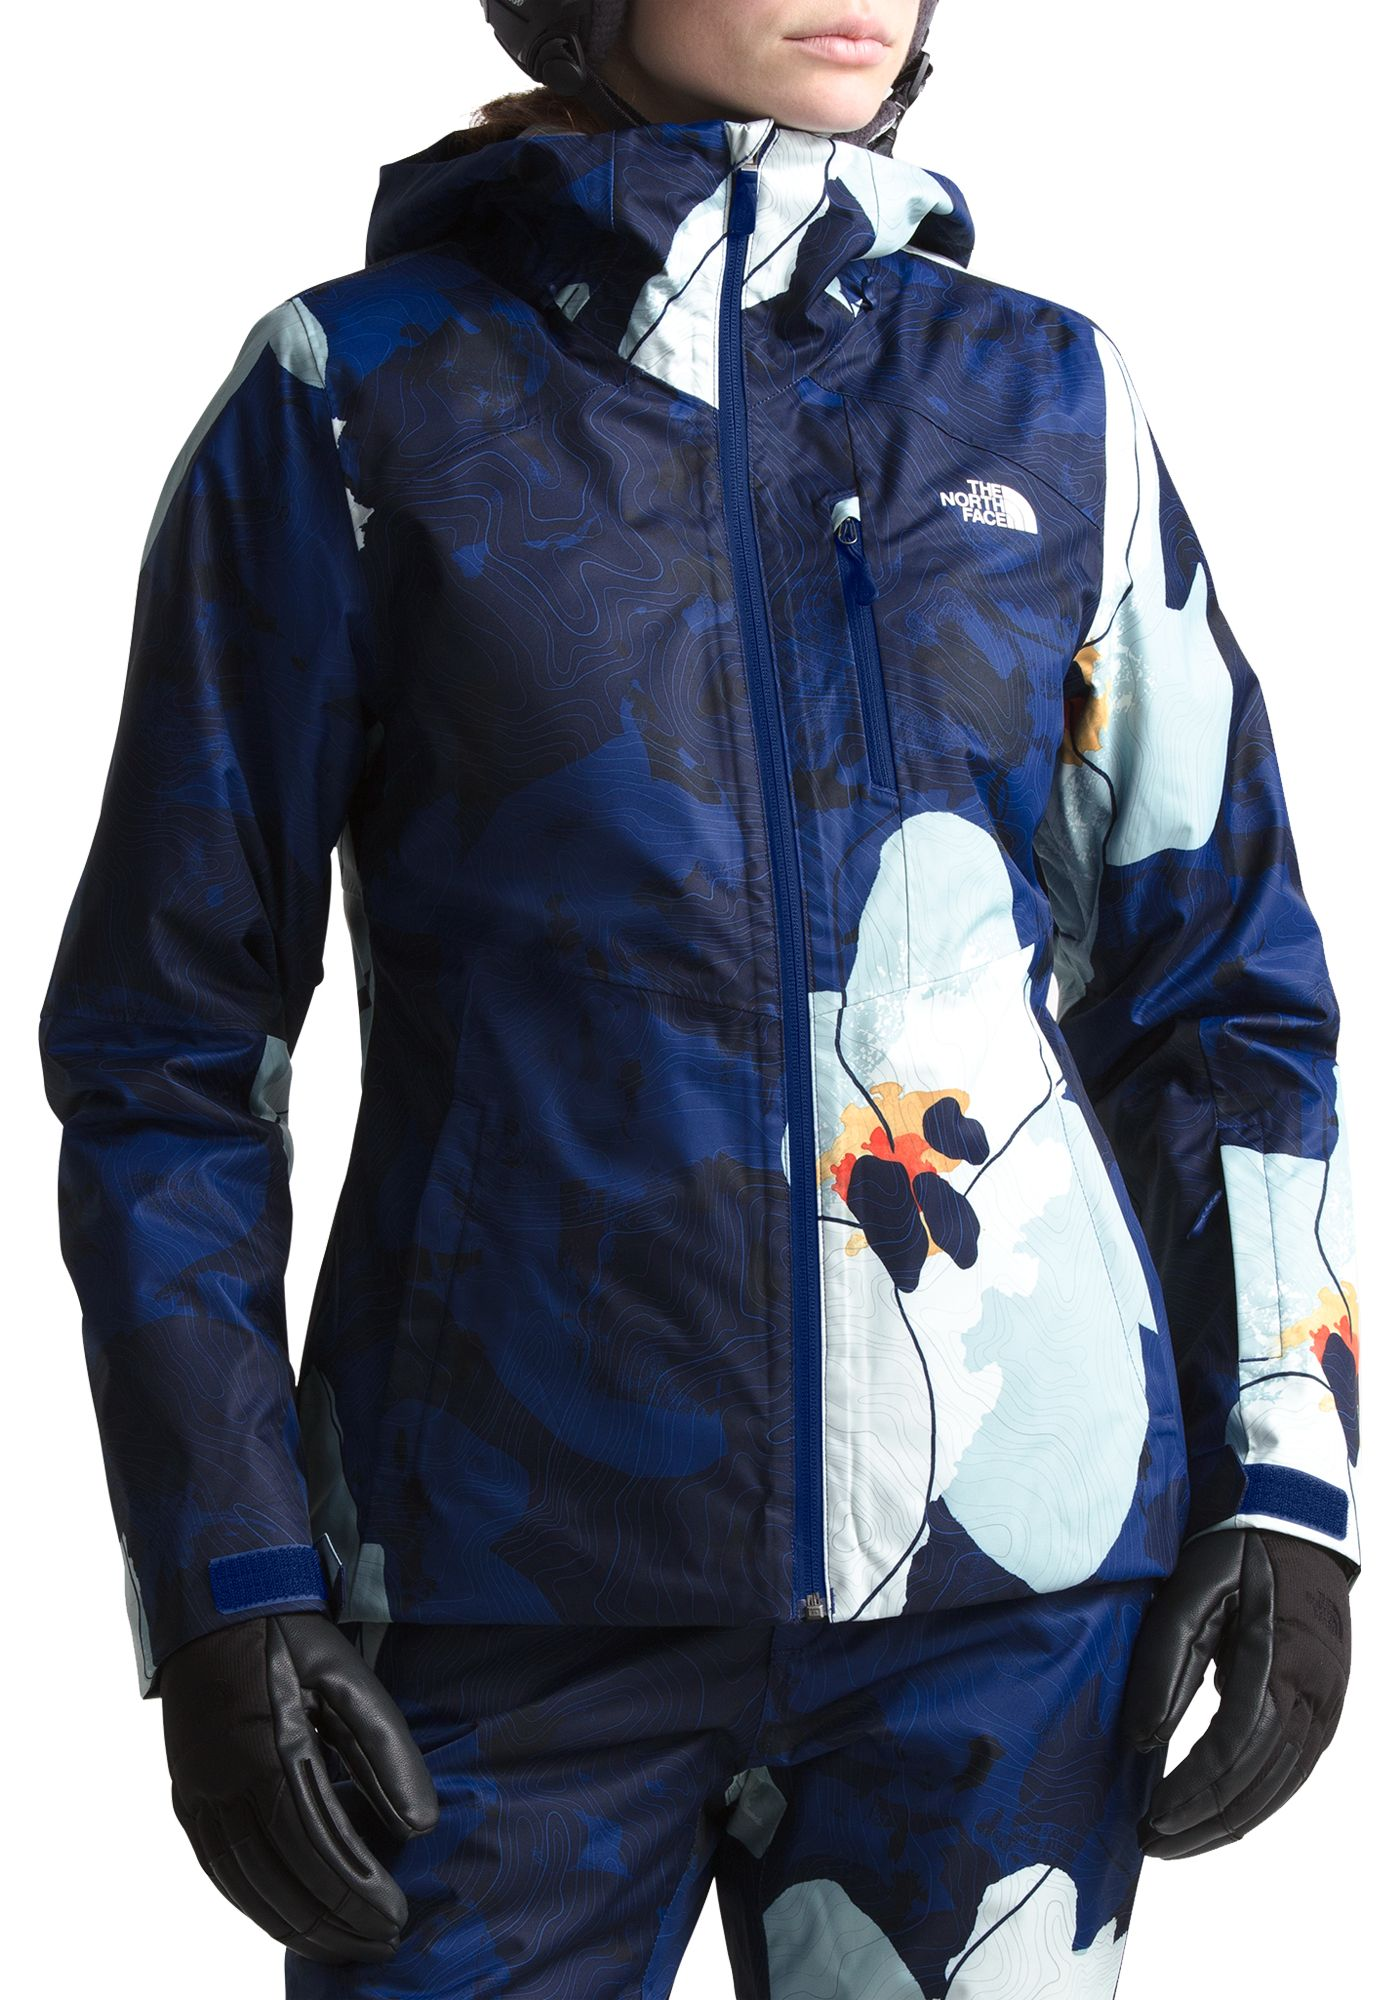 The North Face Women's Clementine Triclimate Jacket